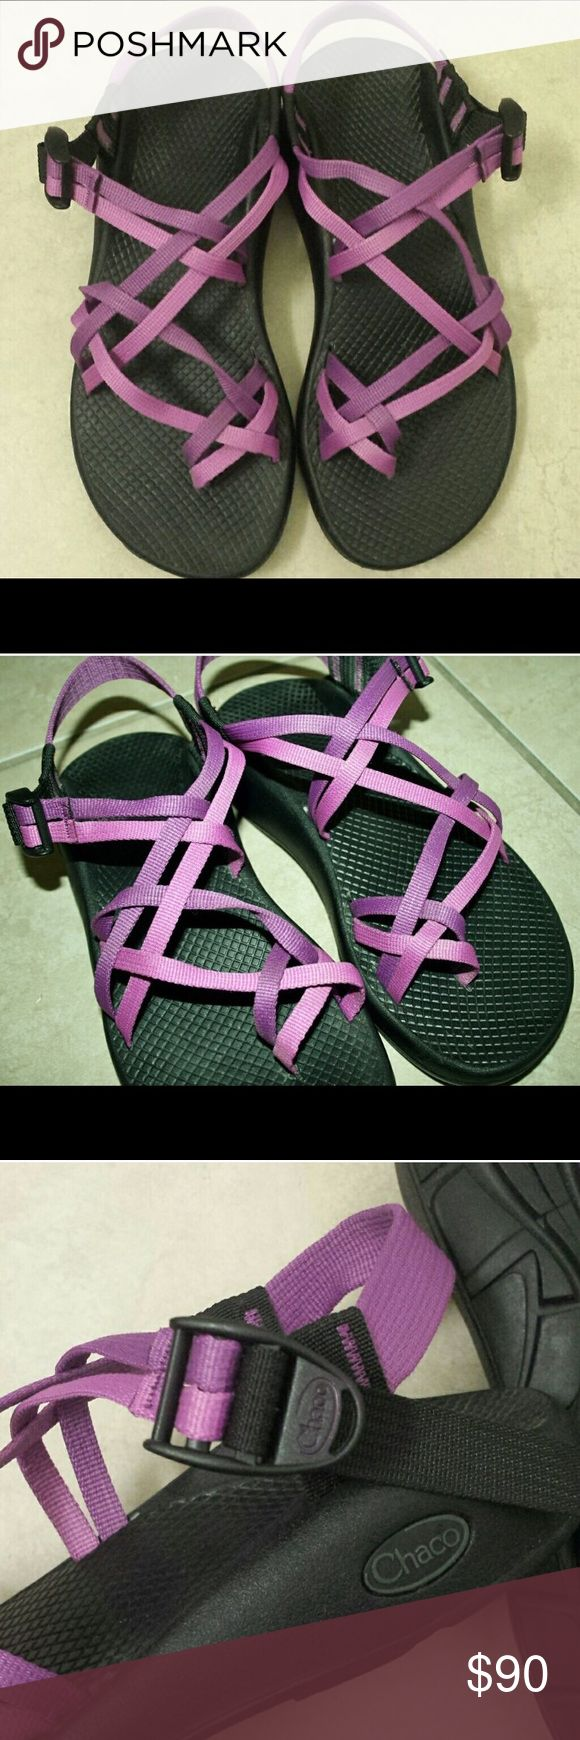 Women's Chacos sandals. Size 8 Beautiful Women's size 8 Chacos sandals. Purple and pink. Once worn once, they are two narrow for my feet. They are in amazing condition, absolutely no signs of wear. They are super cute, I'm sad they don't fit. Chacos Shoes Sandals